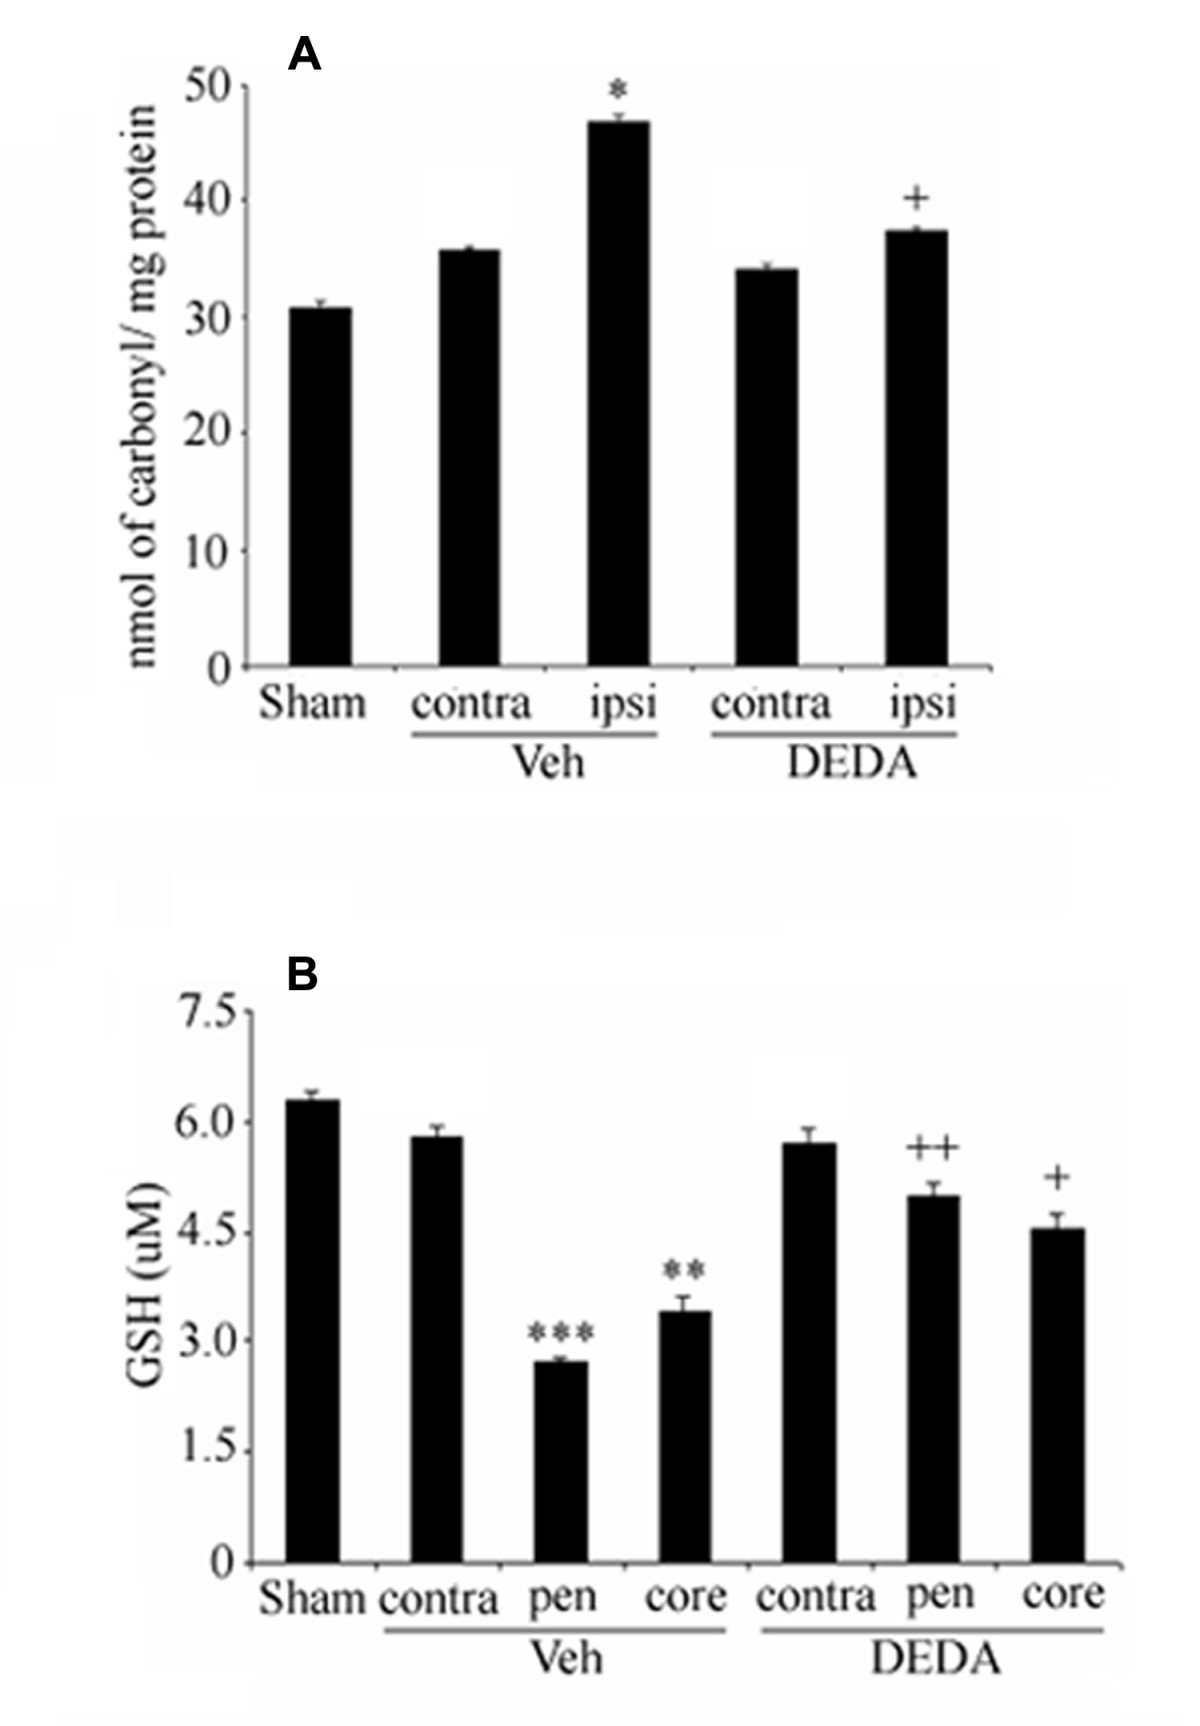 https://static-content.springer.com/image/art%3A10.1186%2F1742-2094-6-21/MediaObjects/12974_2009_Article_191_Fig4_HTML.jpg